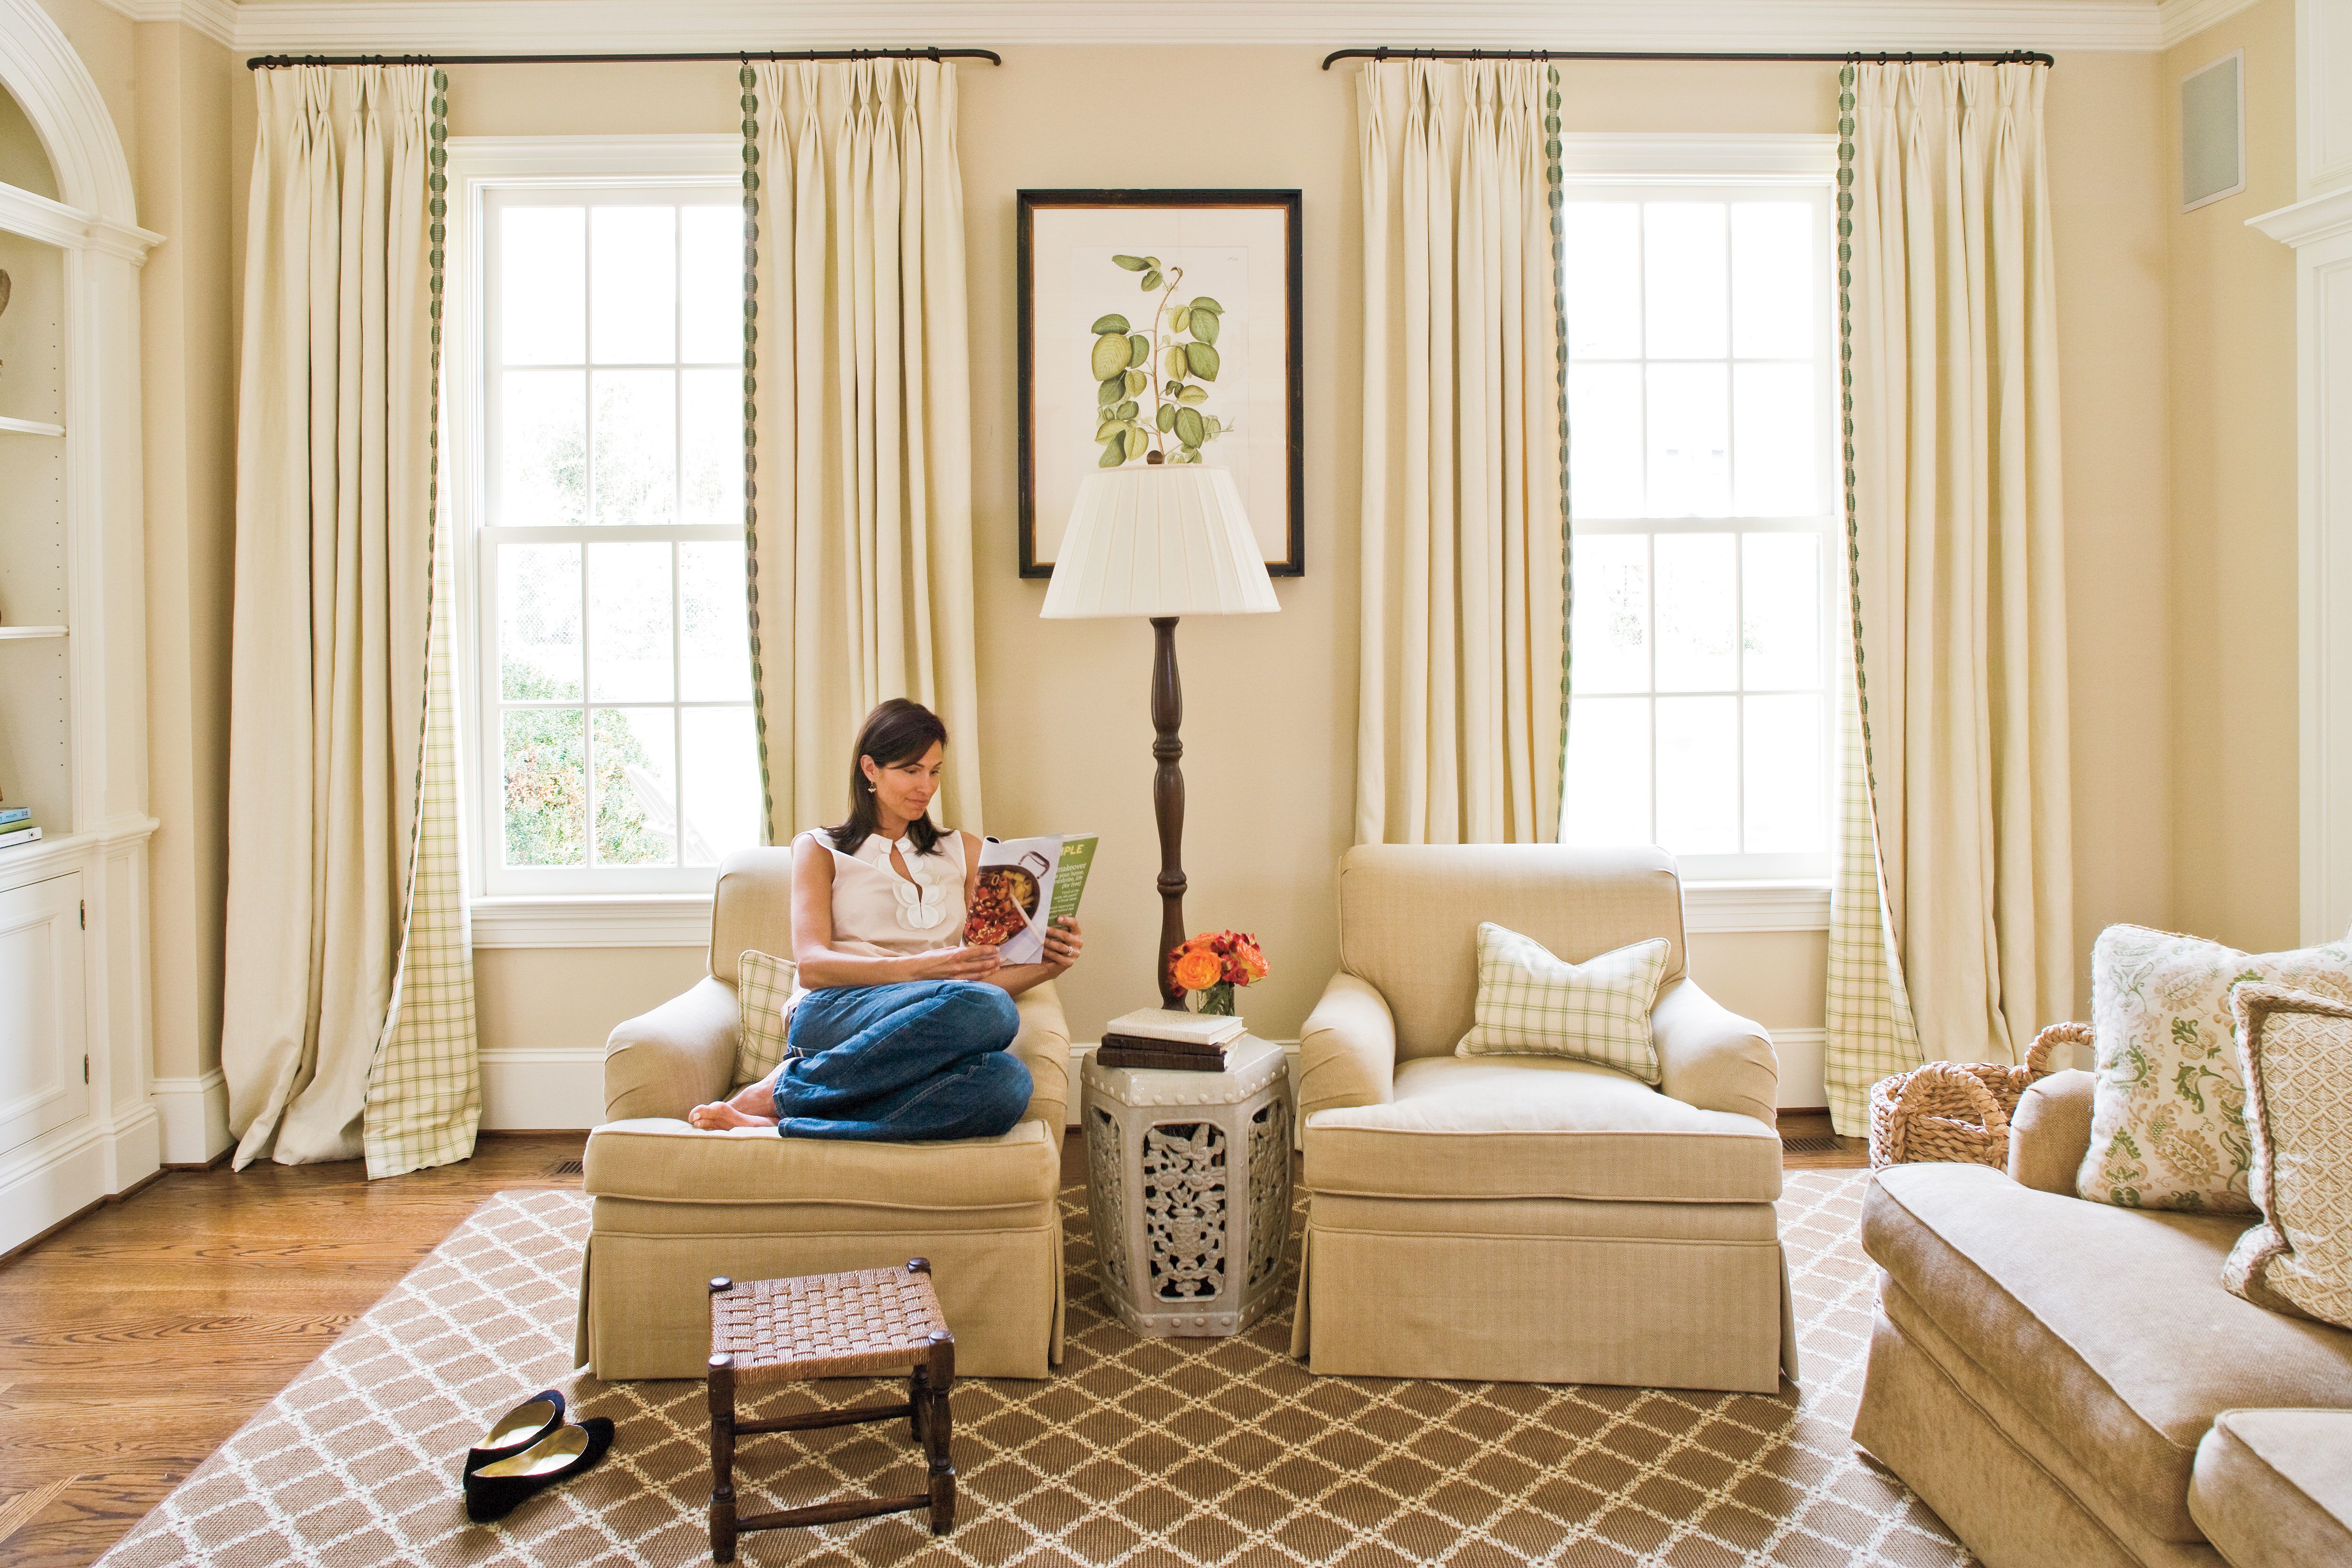 Spruce Up Your Space With Curtains - 106 Living Room Decorating ...